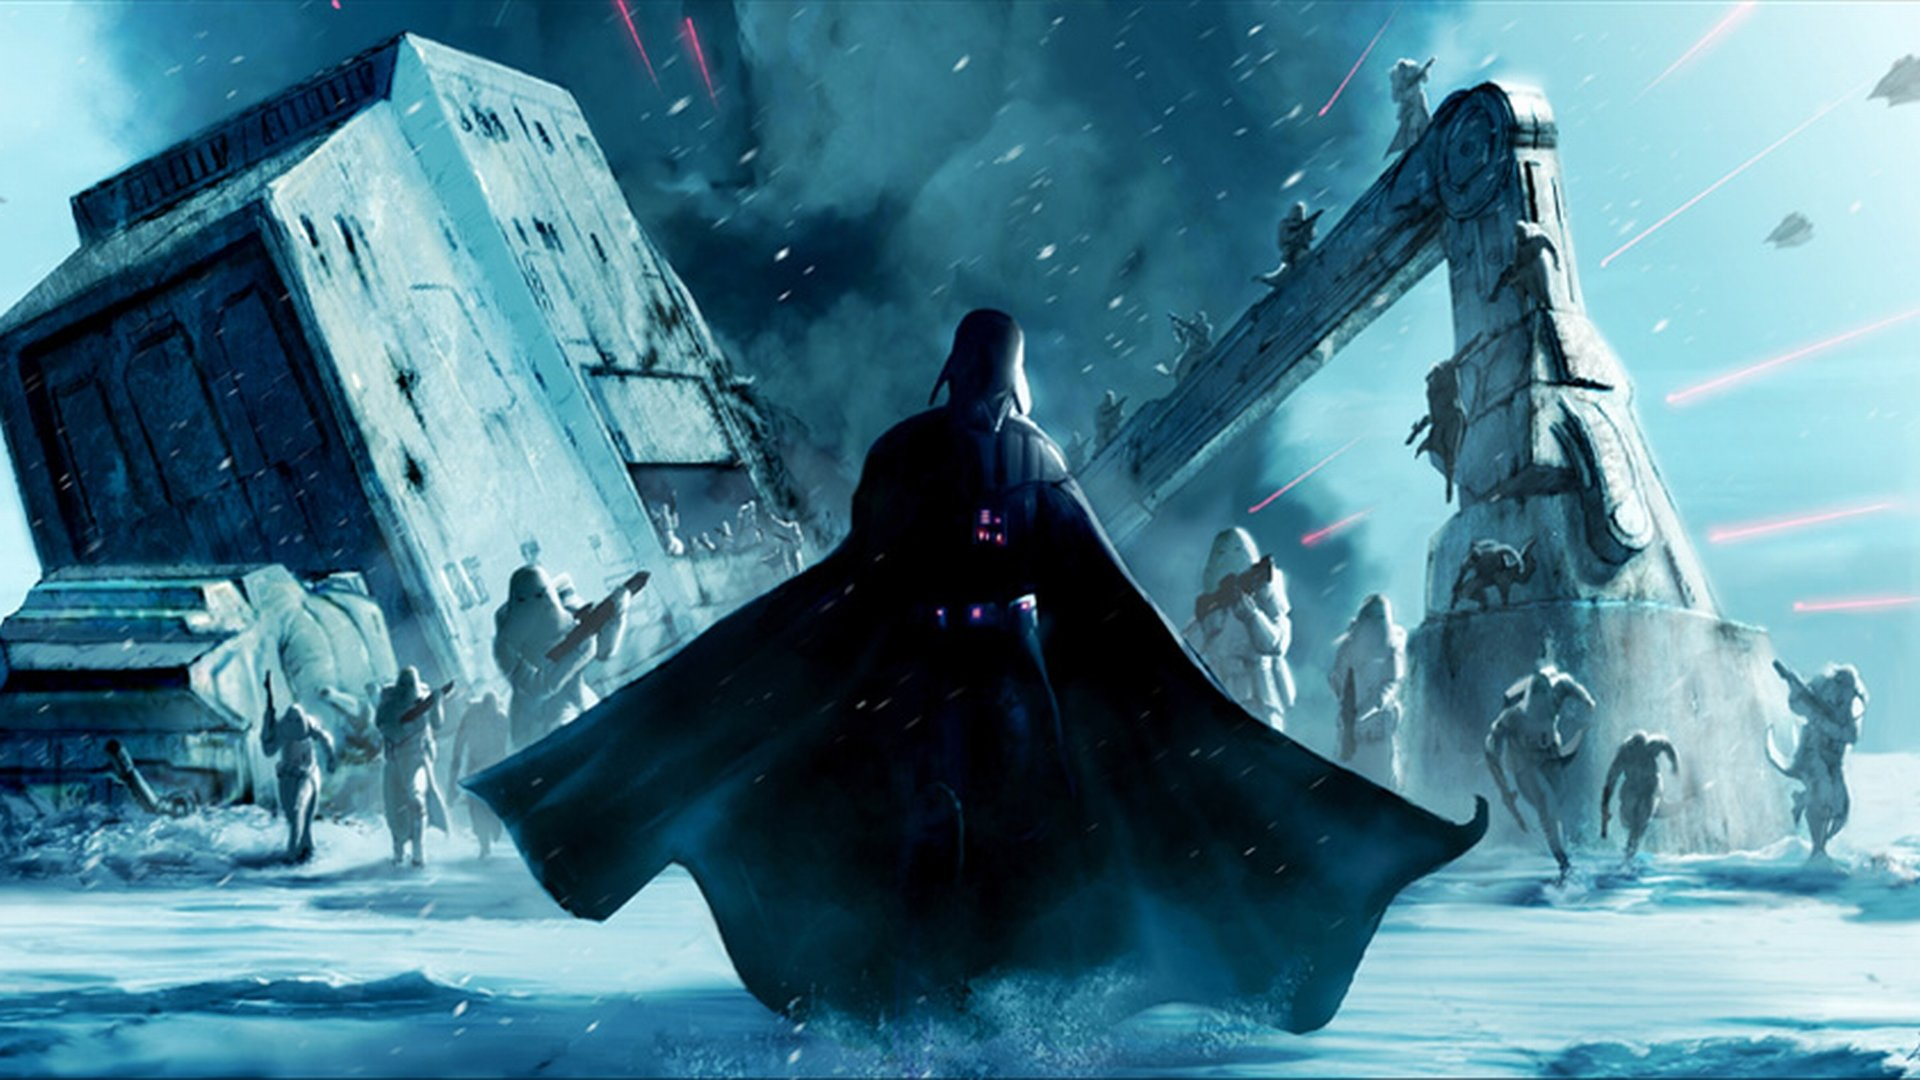 Star Wars wallpapers 1920x1080 Full HD